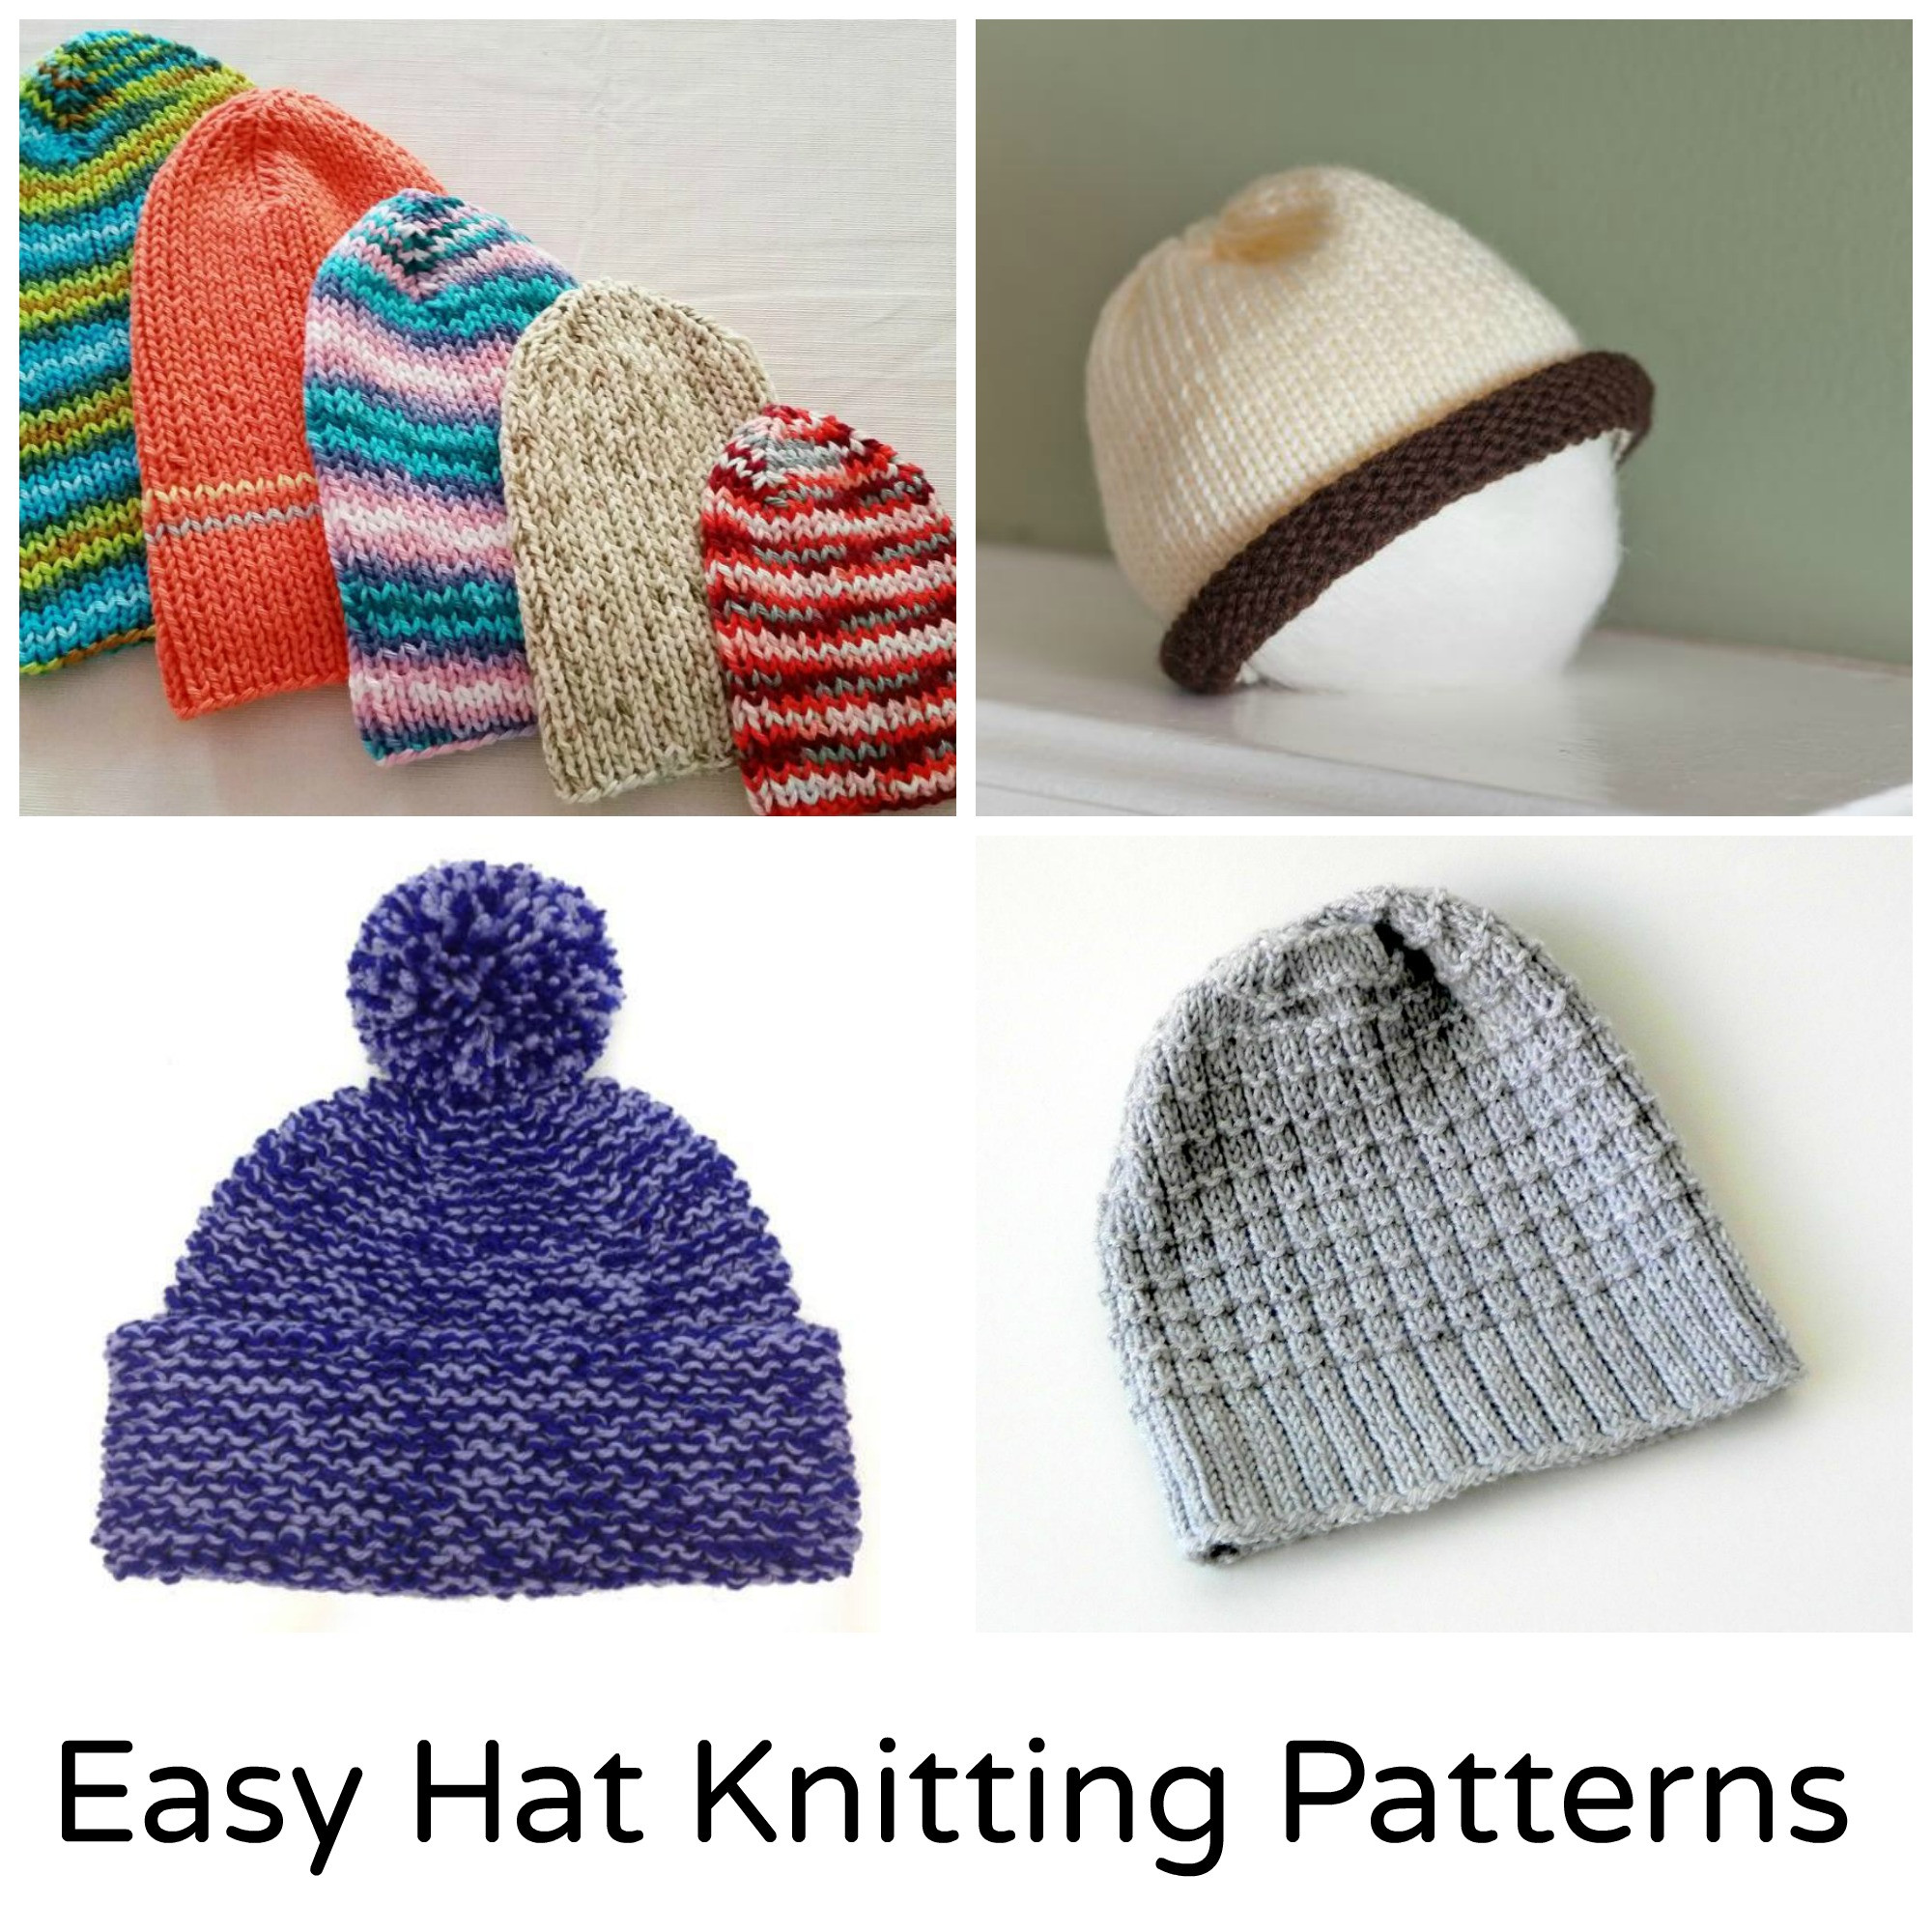 Fresh 12 Quick and Easy Knit Hat Patterns Easy Knit Hat Of Brilliant 47 Pictures Easy Knit Hat